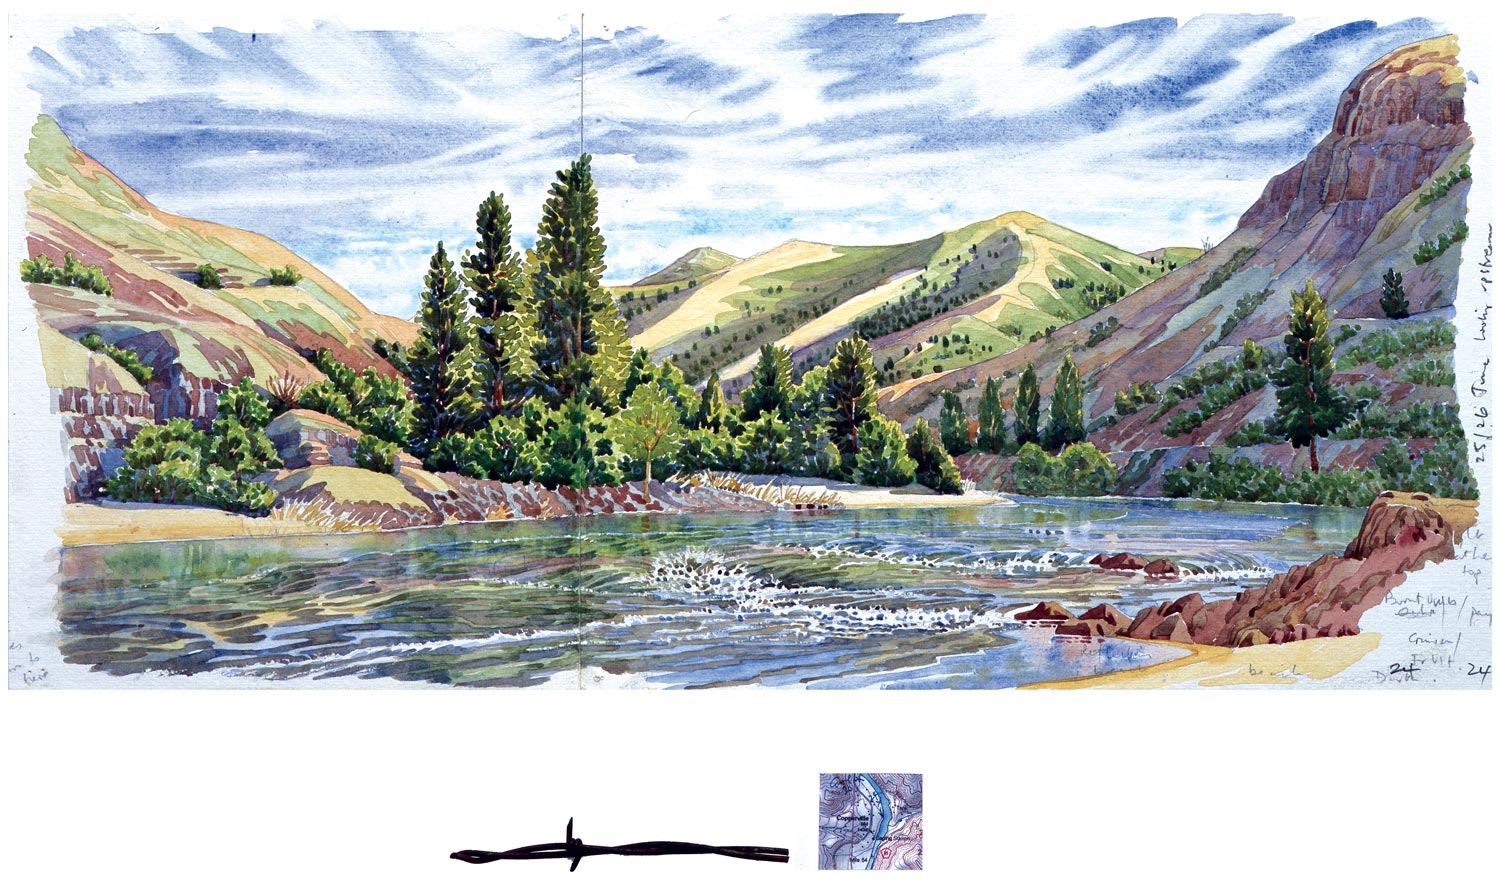 Tony Foster, Mile 363.5 , 2002 | Watercolor and graphite on paper, mixed media | 9 7/8 x 21 7/8 in. / 1 3/4 x 6 3/4 in. | 2002.1.24